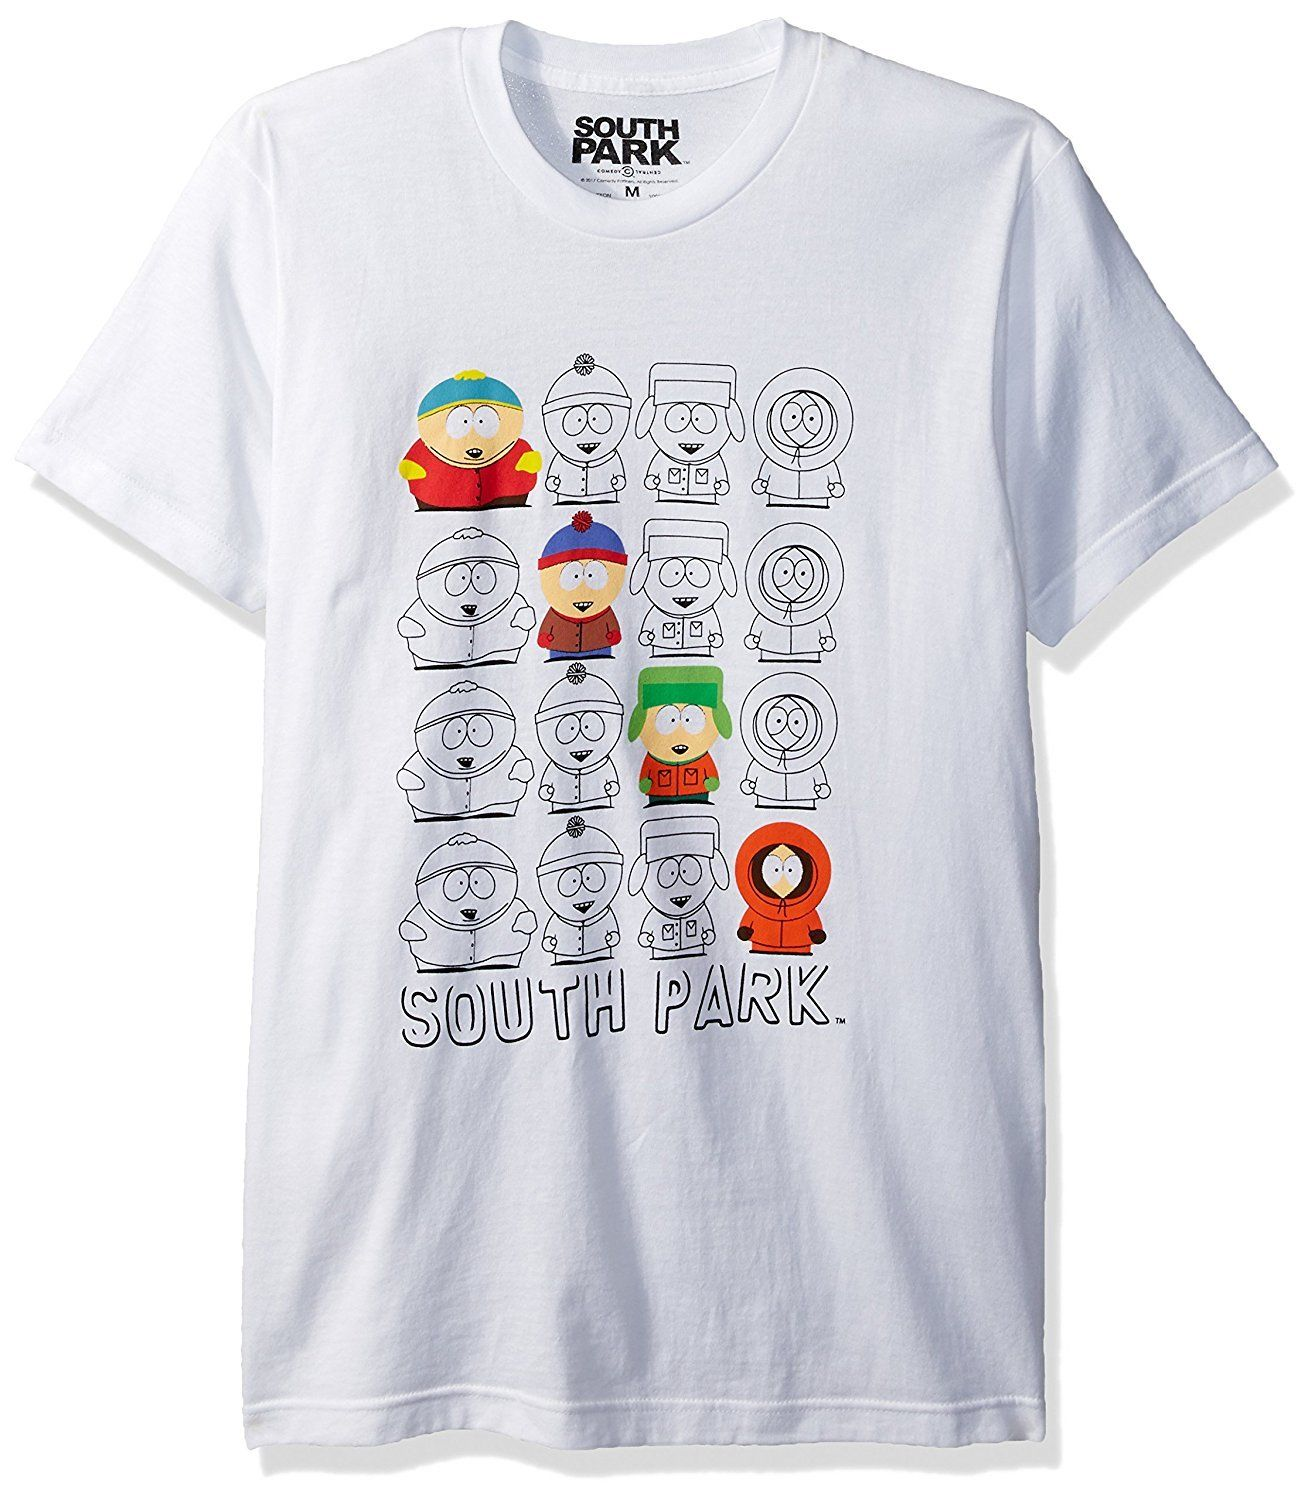 Authentic SOUTH PARK Characters Outline Repeat Logo T-Shirt White S-2XL NEW